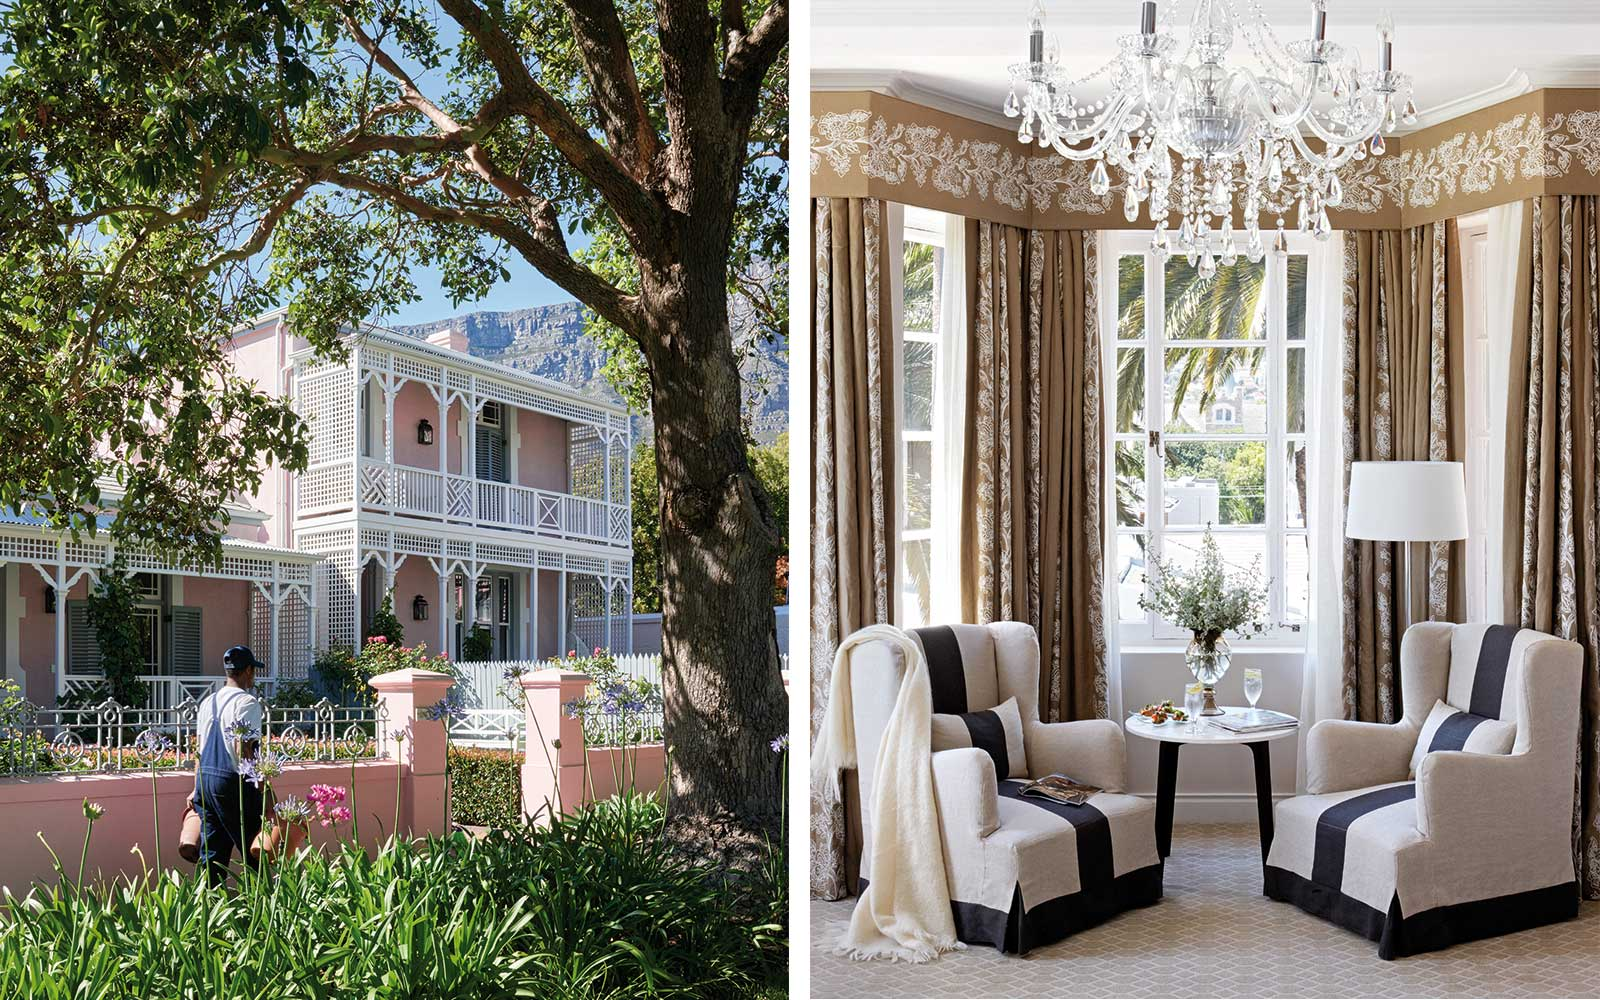 Belmond Mount Nelson hotel, in Cape Town, South Africa